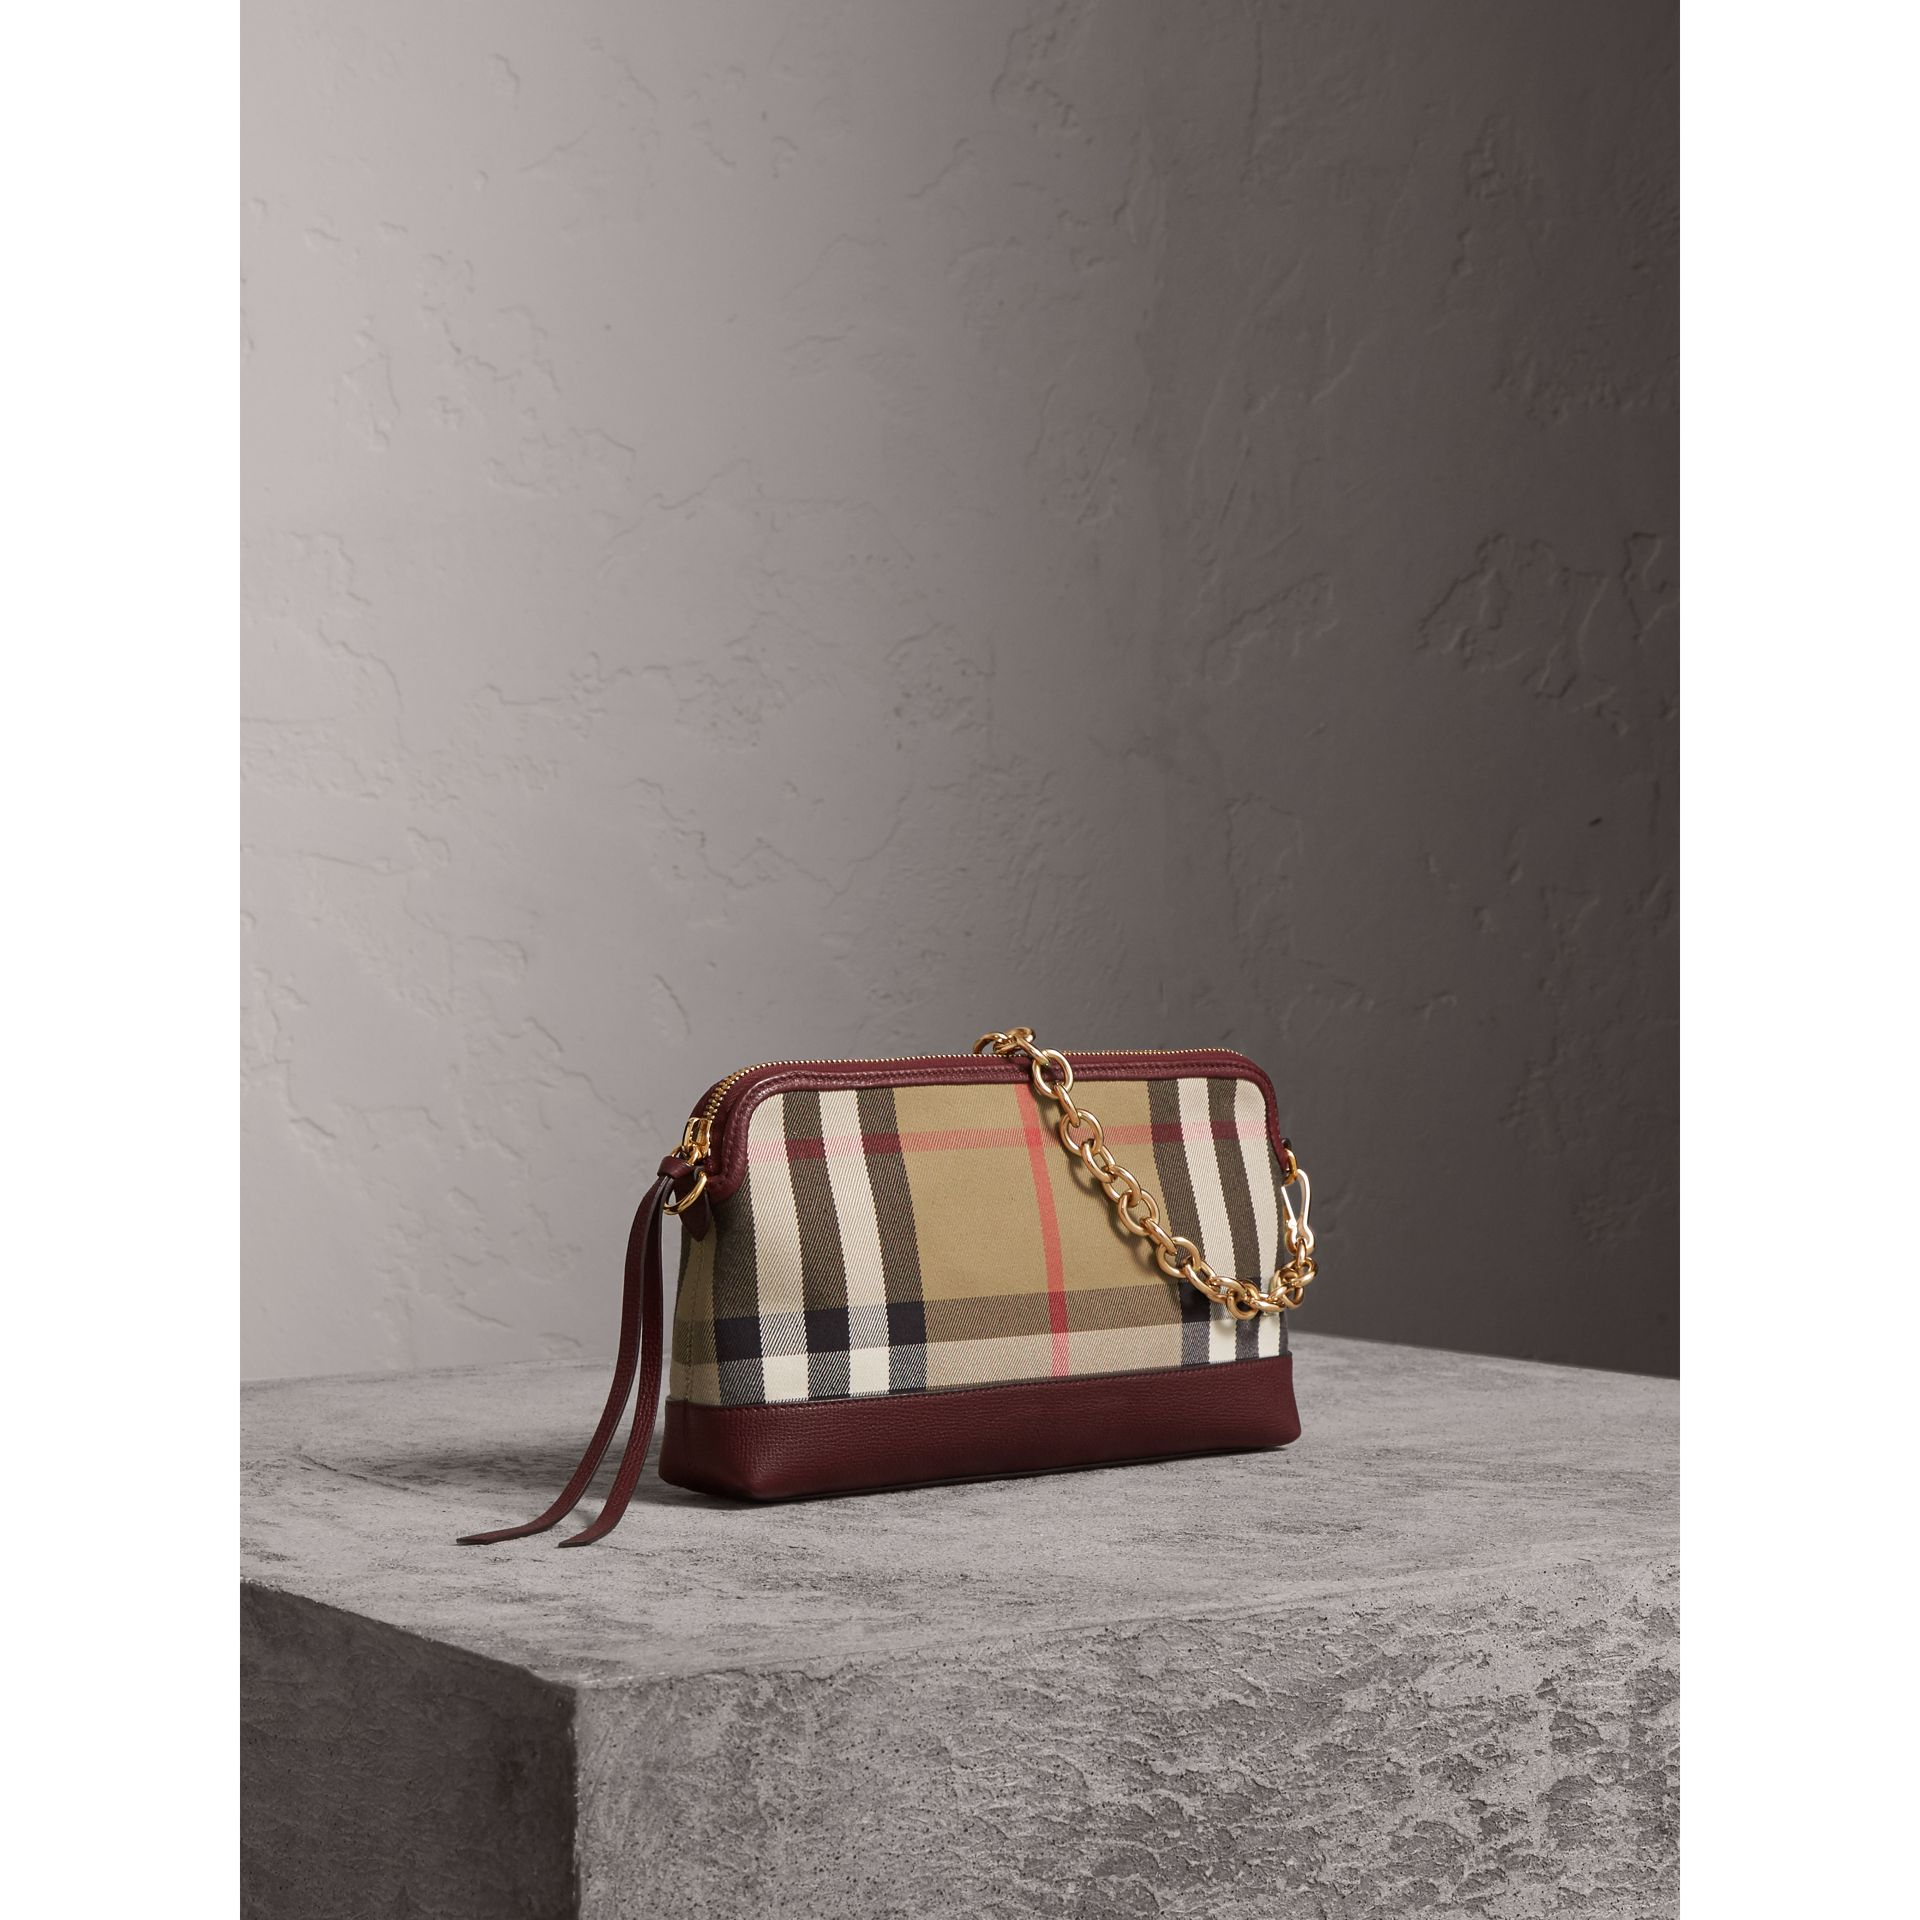 House Check and Leather Clutch Bag in Mahogany Red - Women | Burberry - gallery image 8